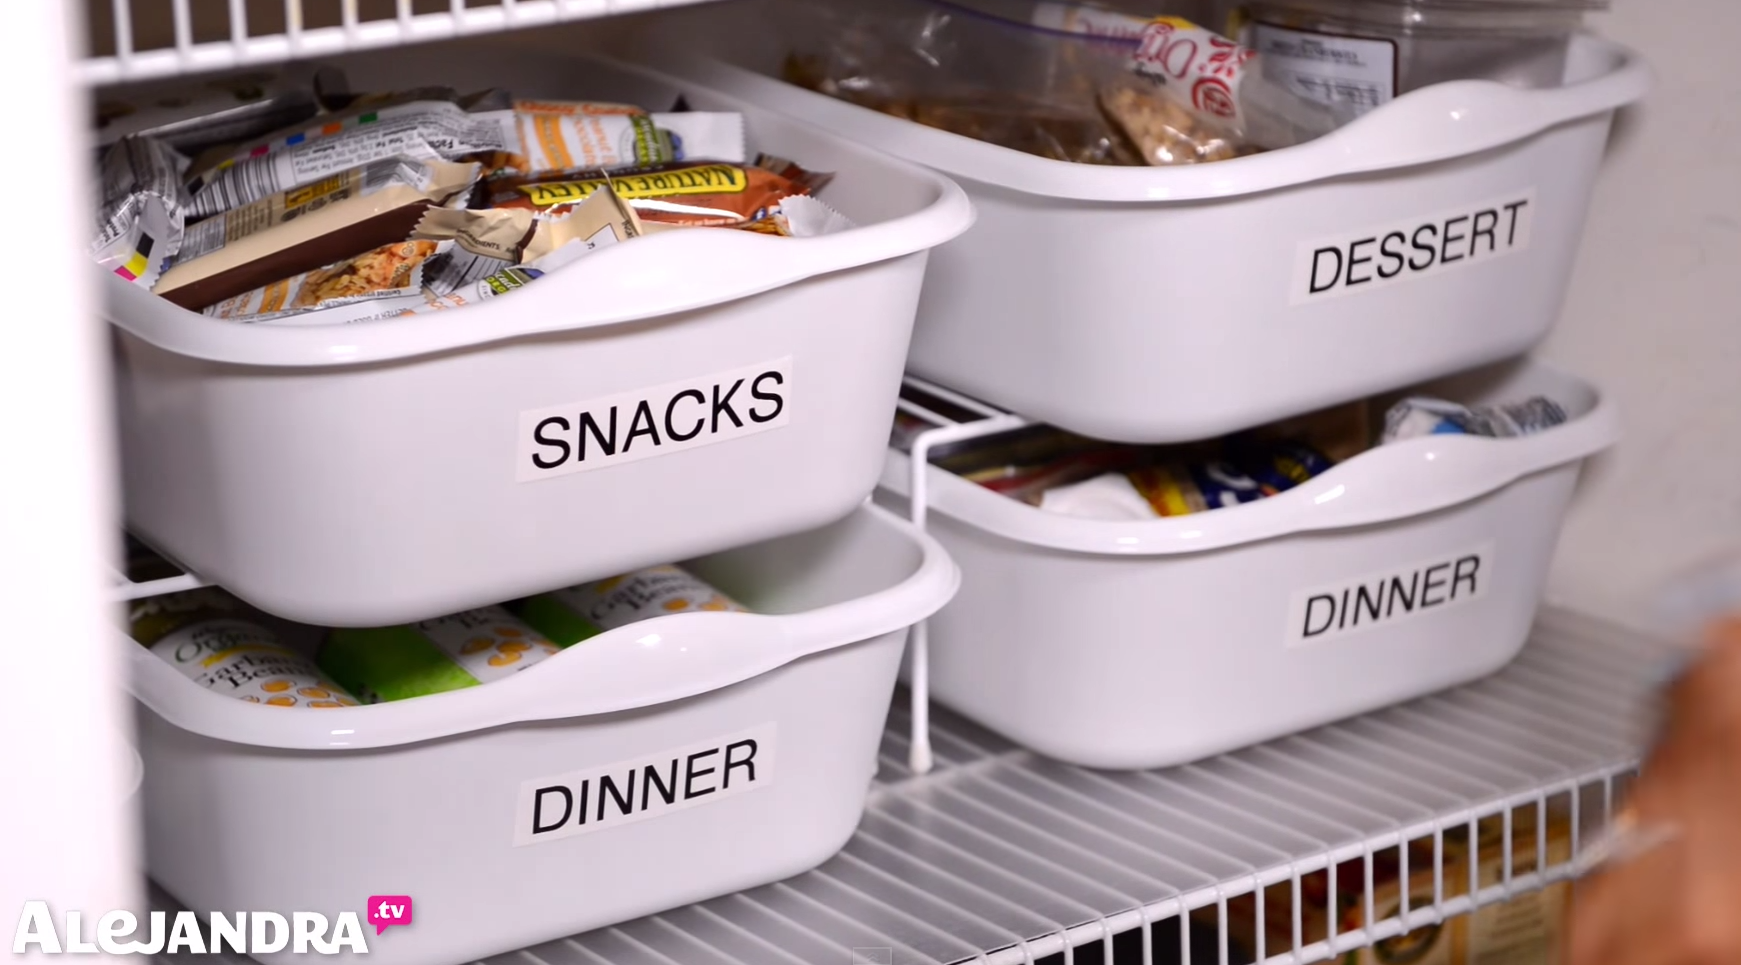 Cheap Pantry Organizing Tip: Use Dollar Store Dishpans to Organize Snack & Dinner Foods in the Pantry #AlejandraTV